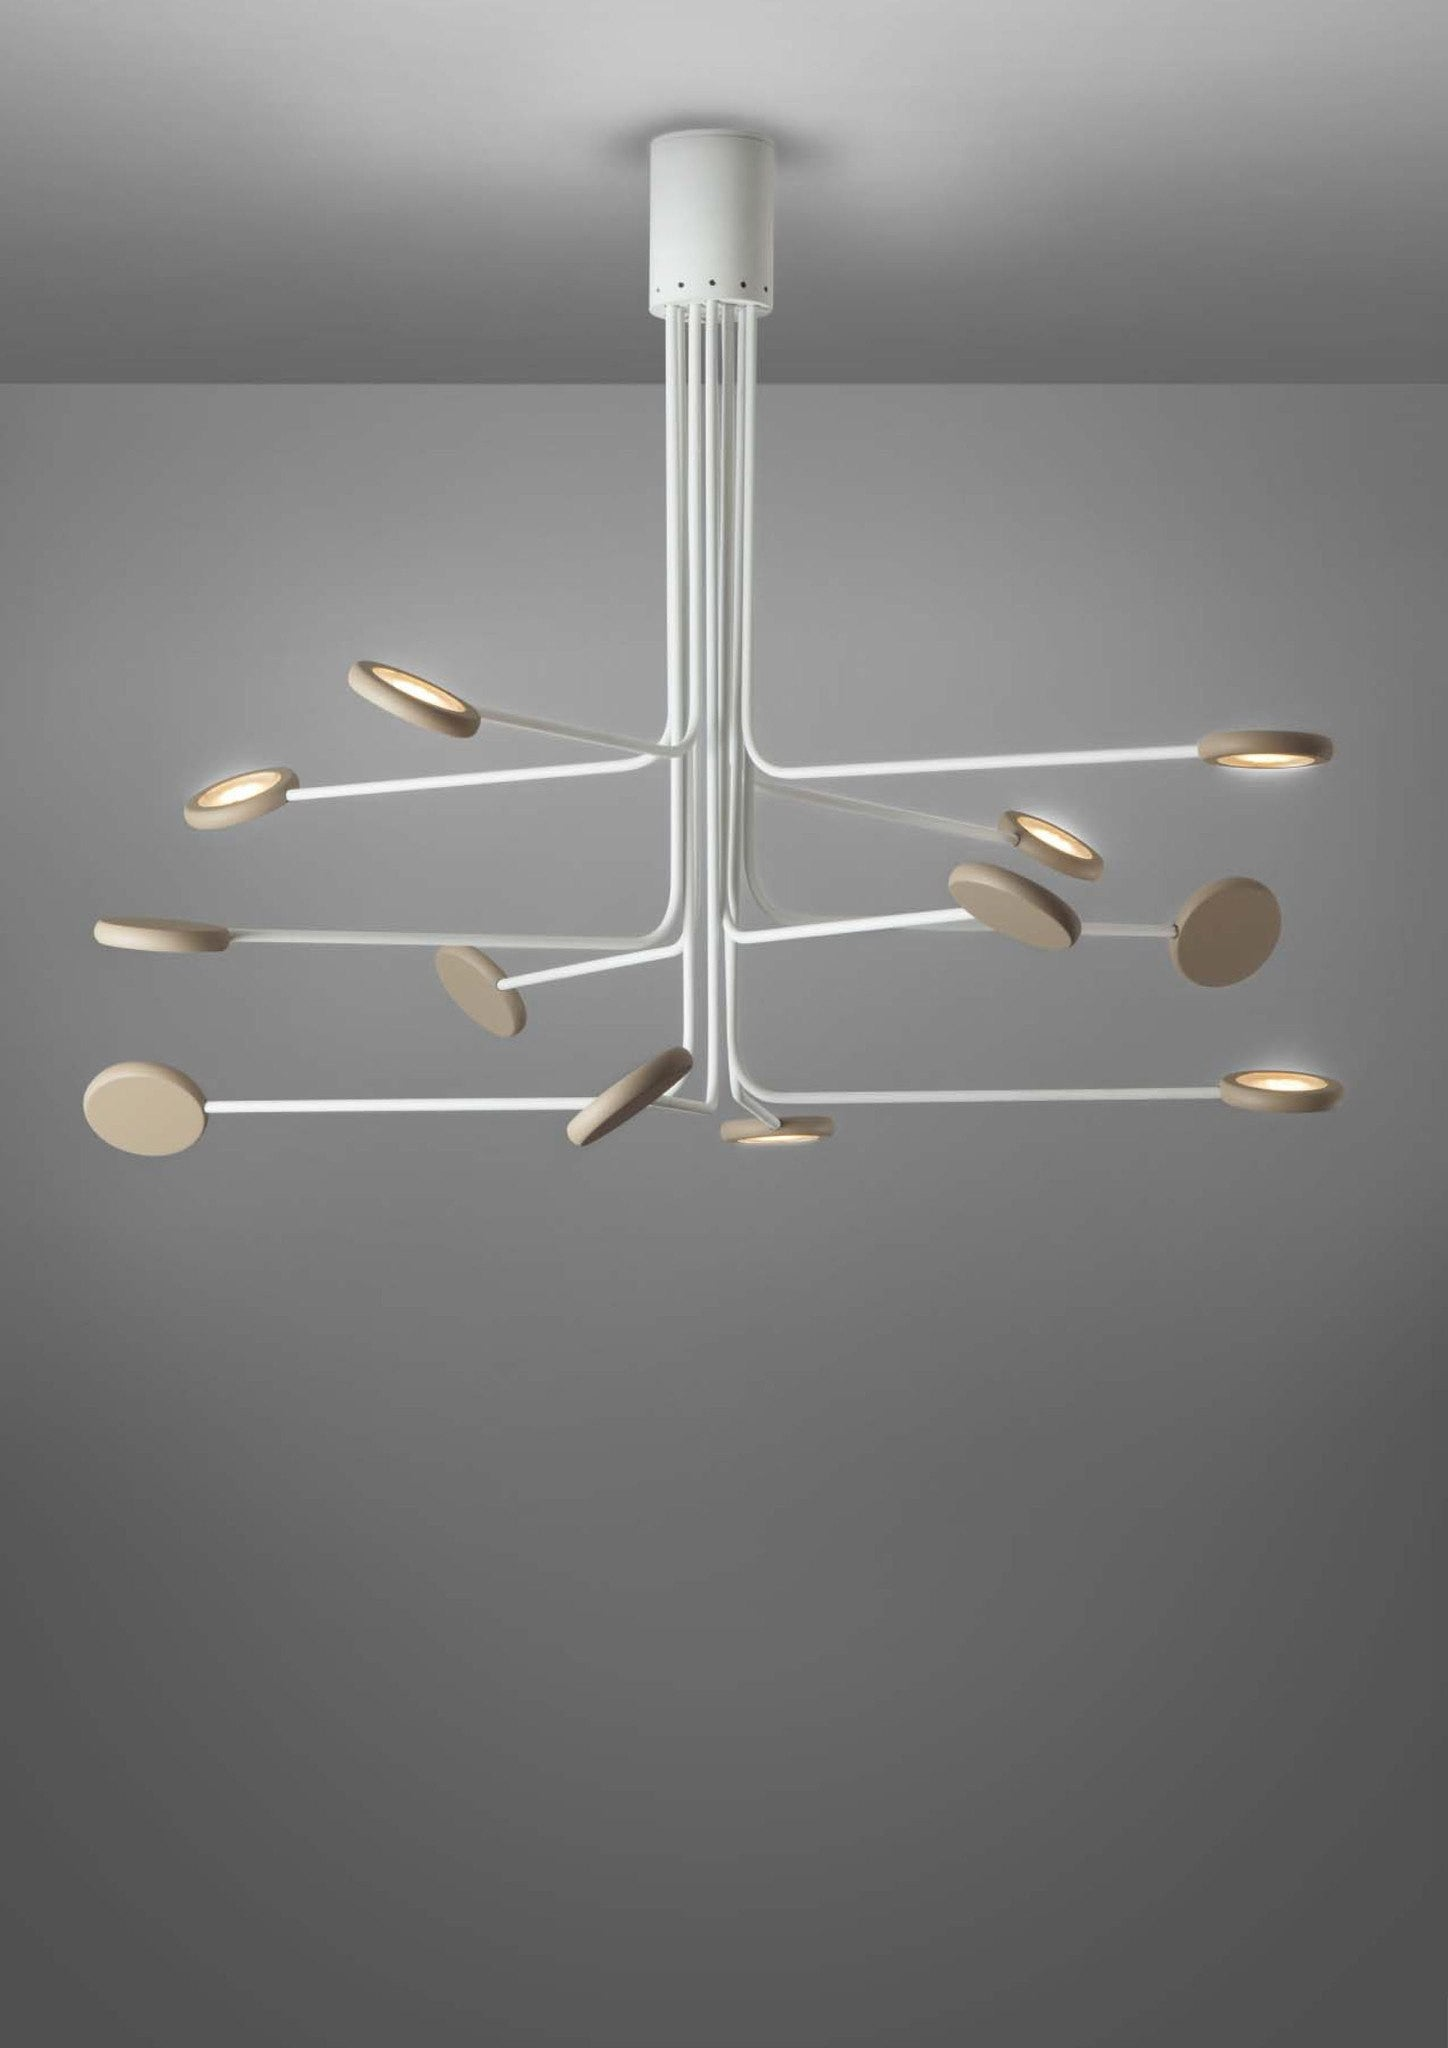 Icone arbor 12 arm suspended ceiling light london lighting icone arbor 12 arm suspended ceiling light london lighting 5 aloadofball Image collections